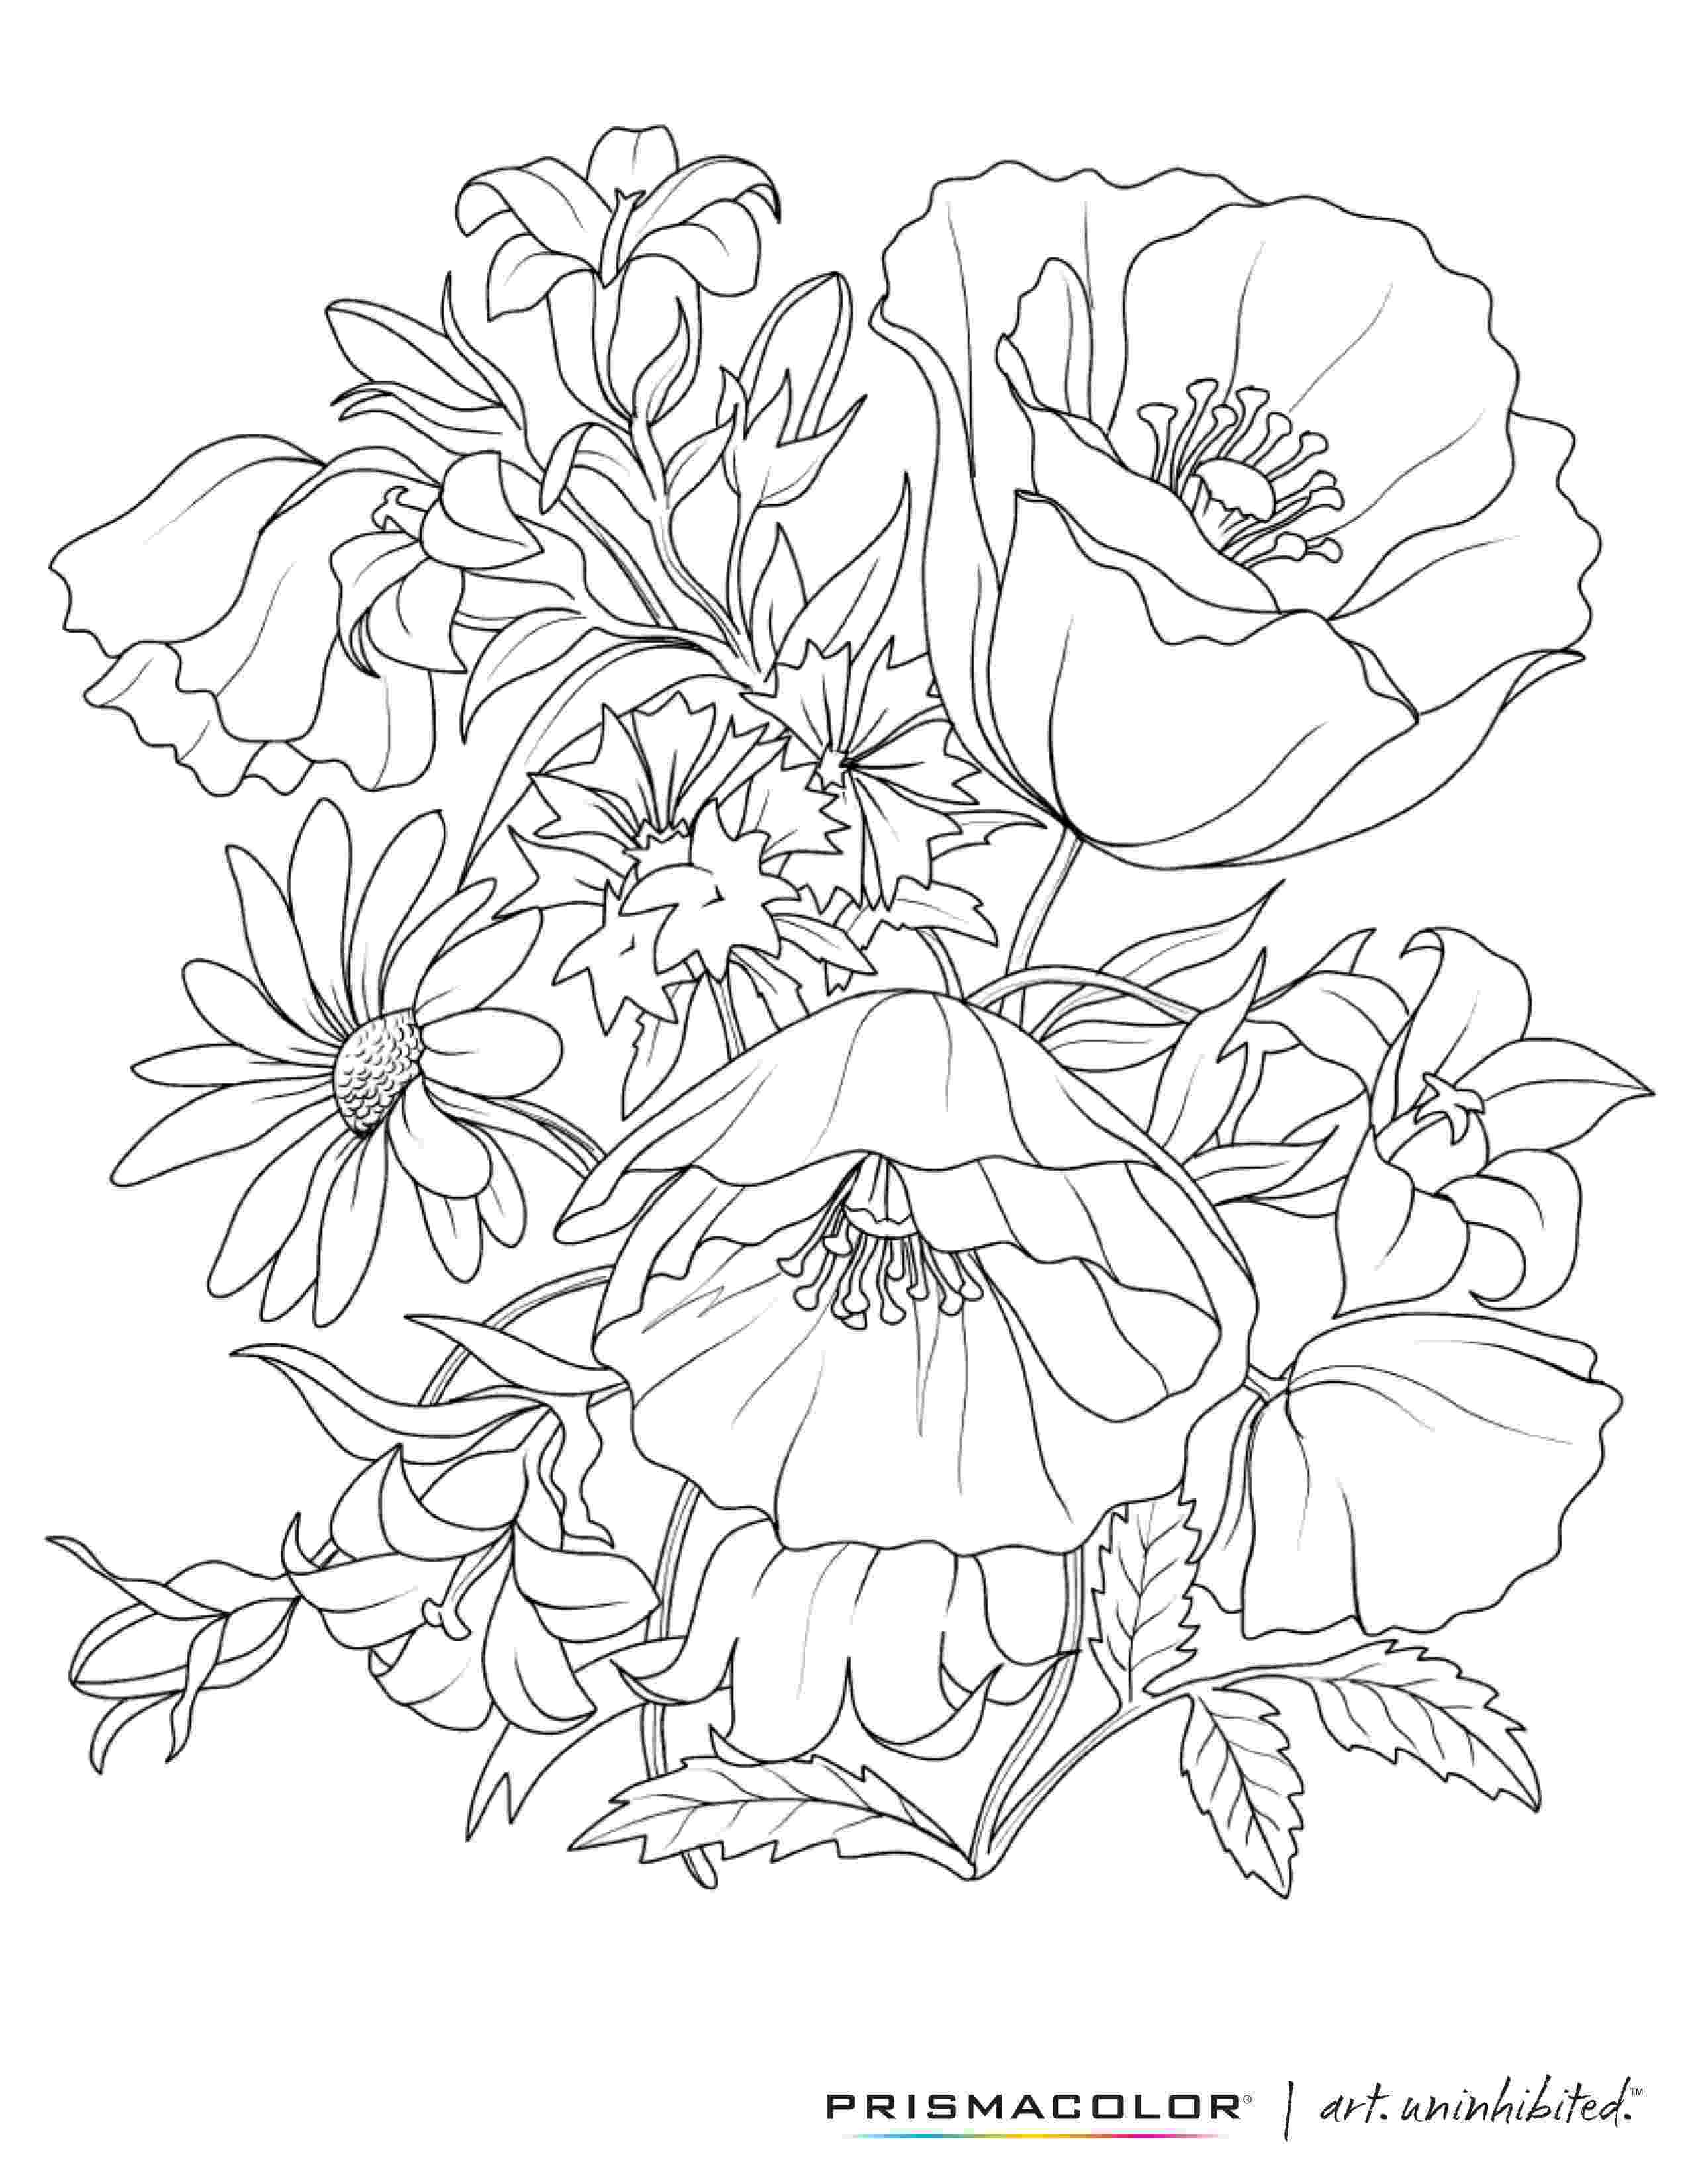 beautiful flowers coloring pages what a beautiful flower adult coloring page colouring flowers pages beautiful coloring